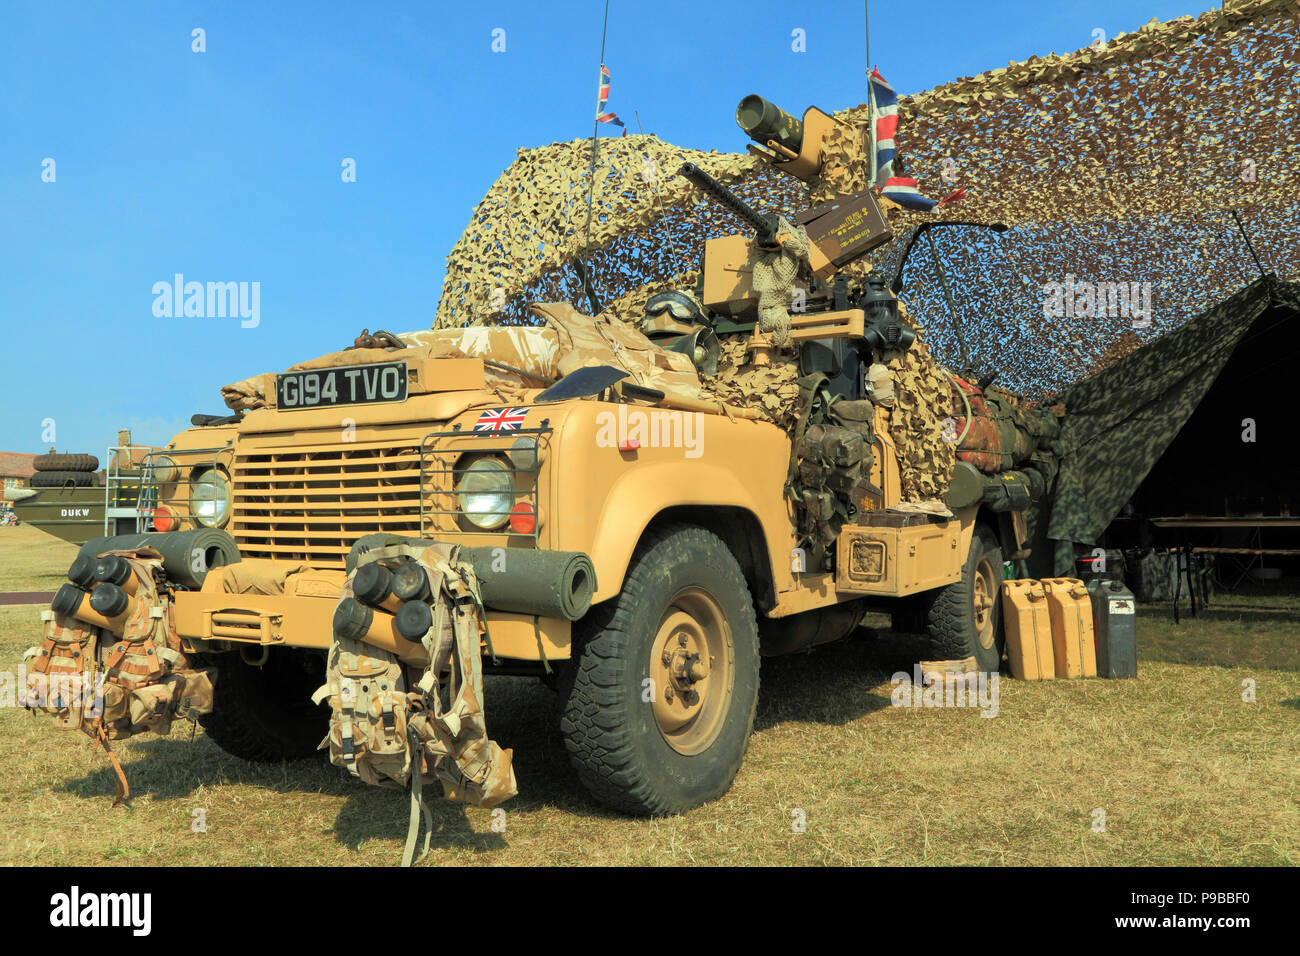 British, 1980s, Military Vehicle, Jeep, vintage, British Army, camouflage netting, tent, as served in Afghanistan War - Stock Image